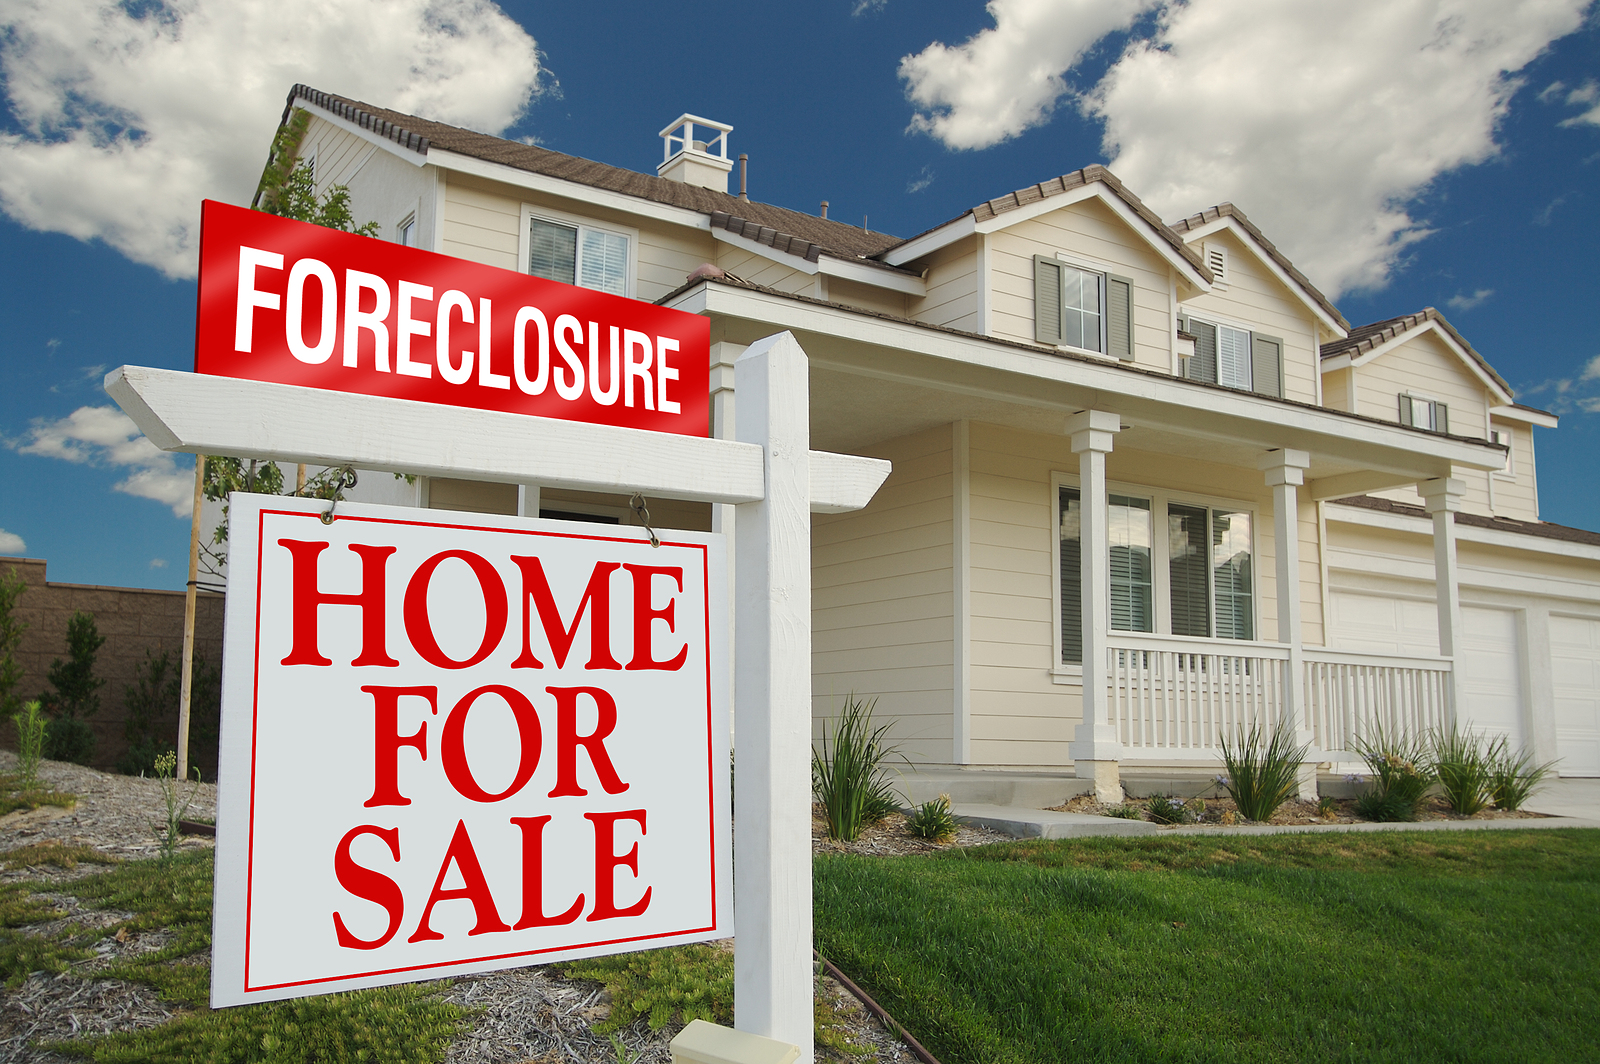 Foreclosure Prevention - Protecting Your Assets By Filing Bankruptcy